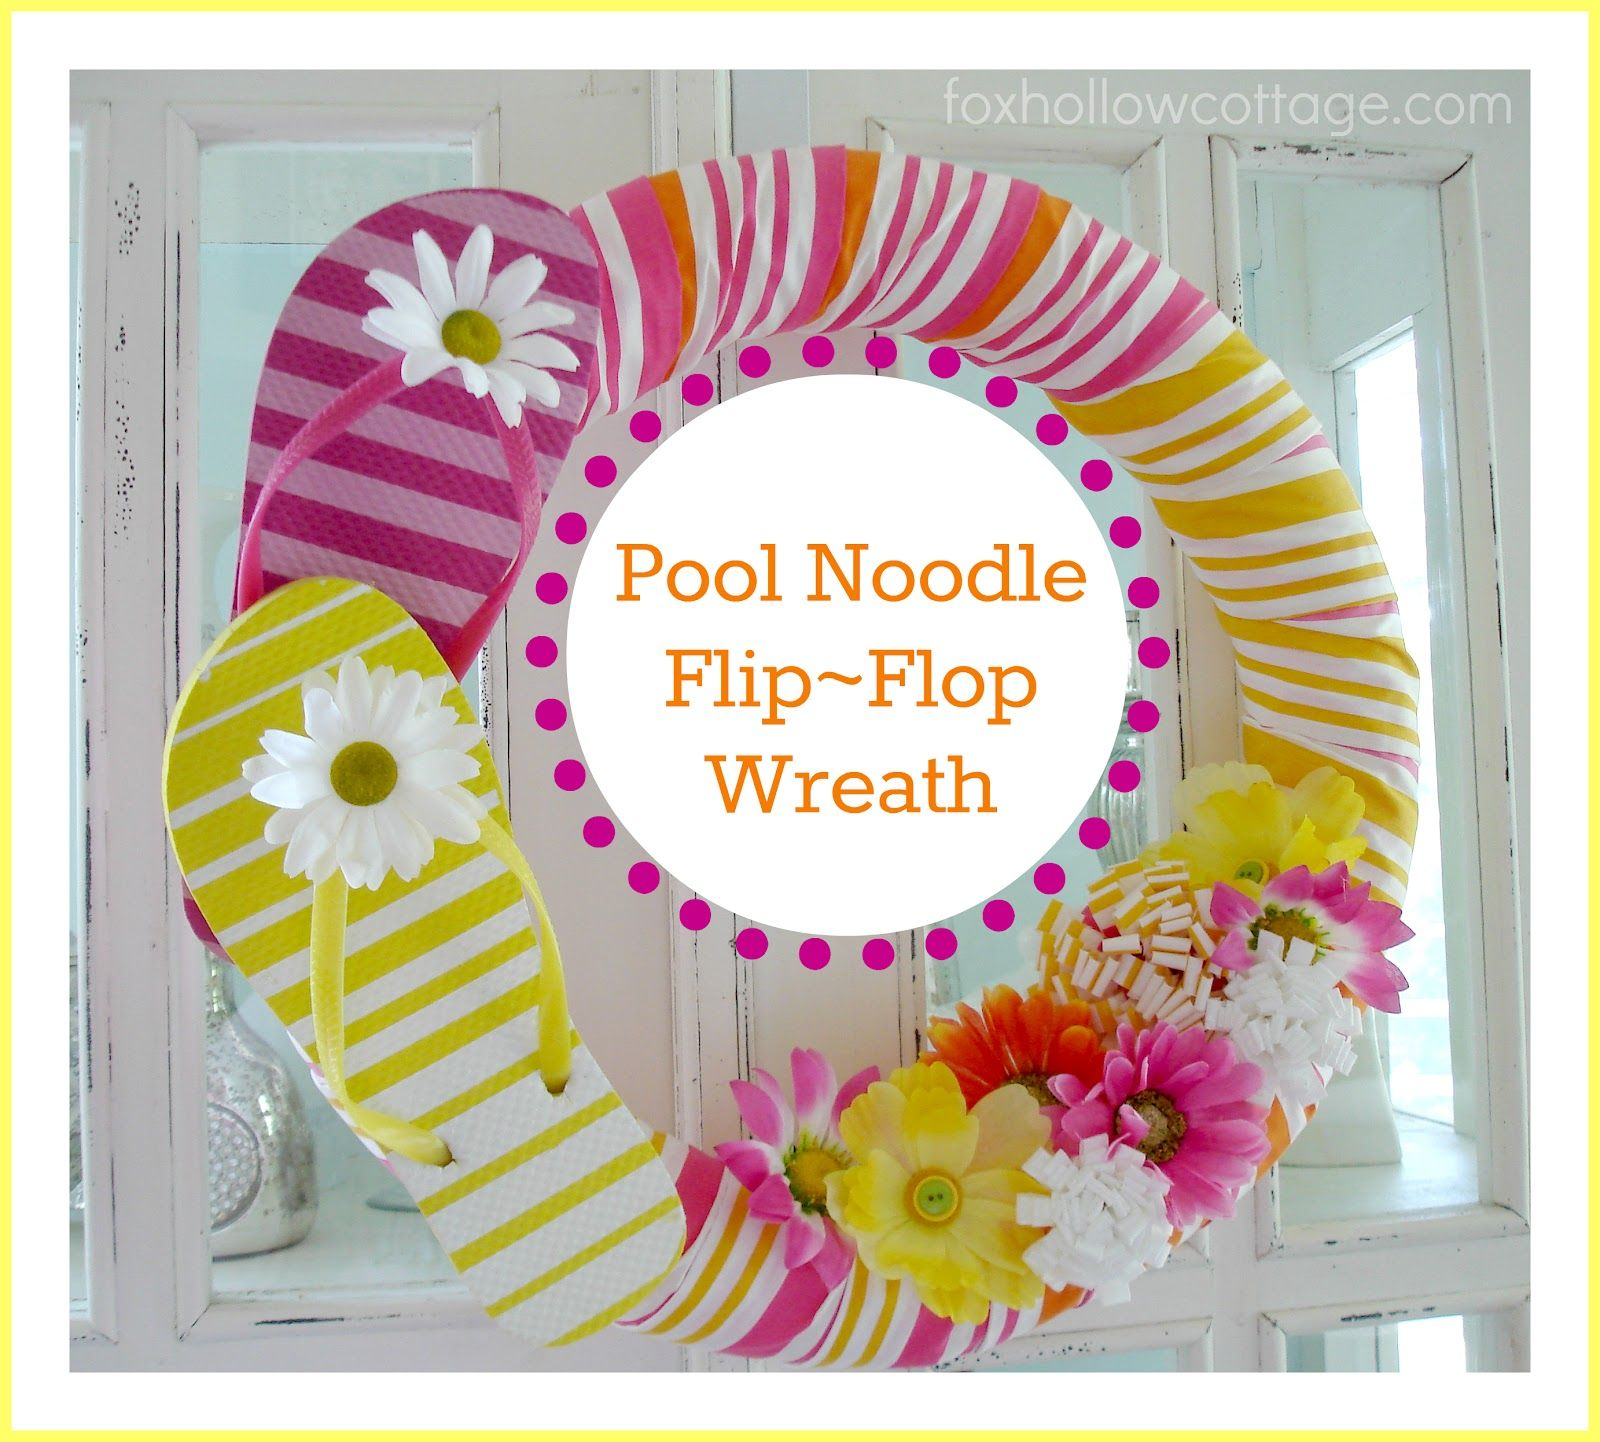 Flip Flop Summer Pool Noodle Wreath Tutorial #poolnoodlewreath